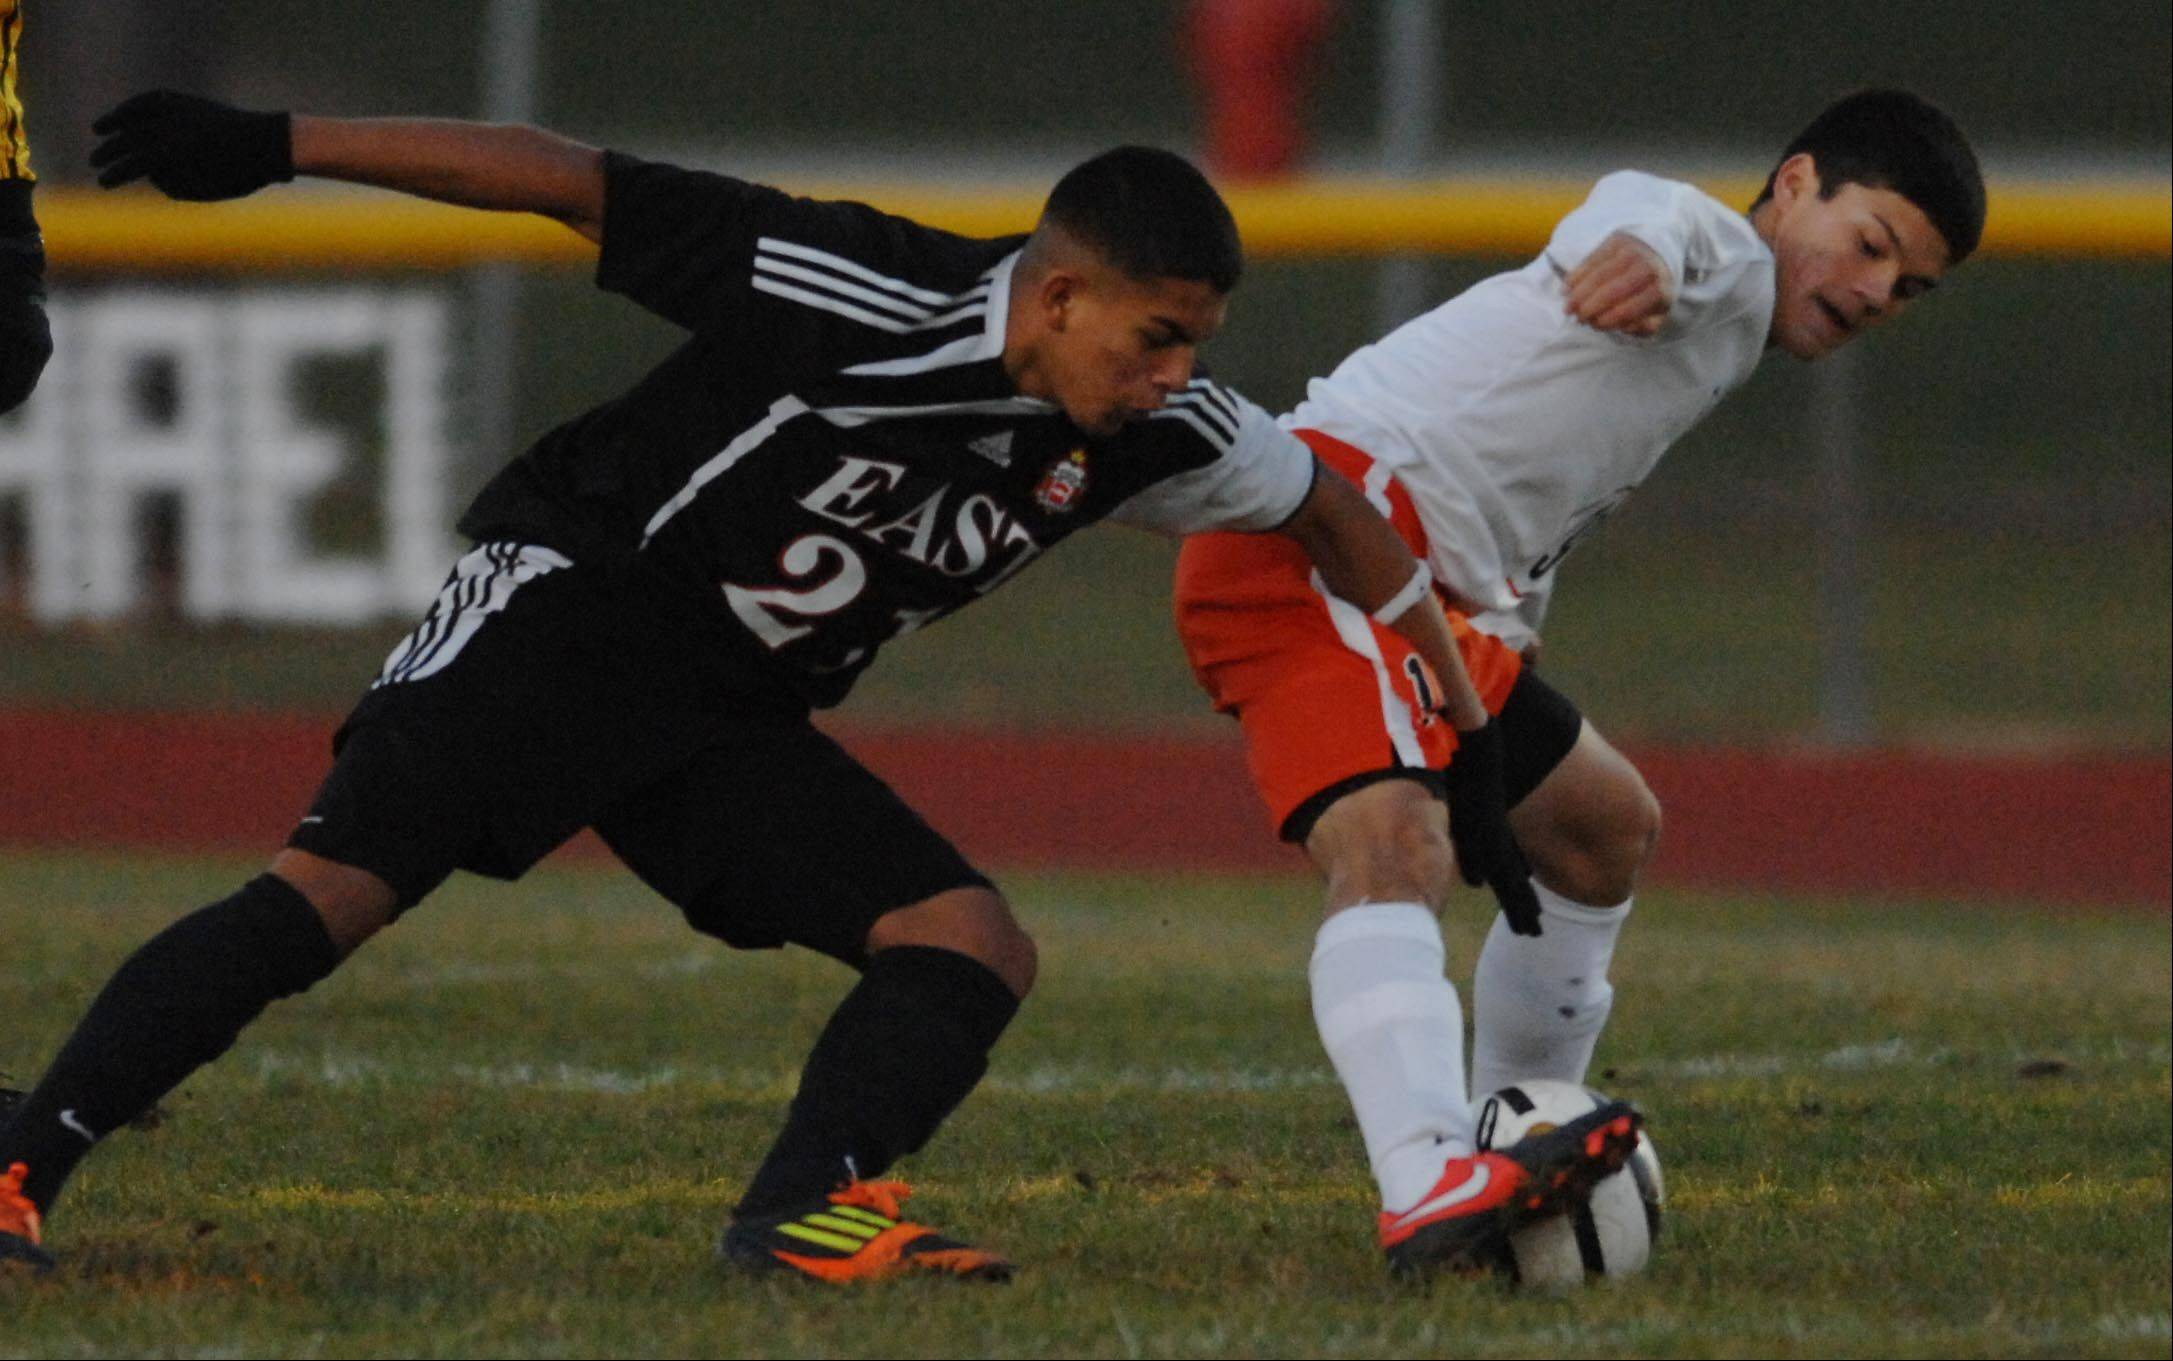 St. Charles East's Kevin Kurtz and East Aurora's Danny Miranda battle Wednesday during the Upstate Eight boys soccer championship game at St. Charles East.